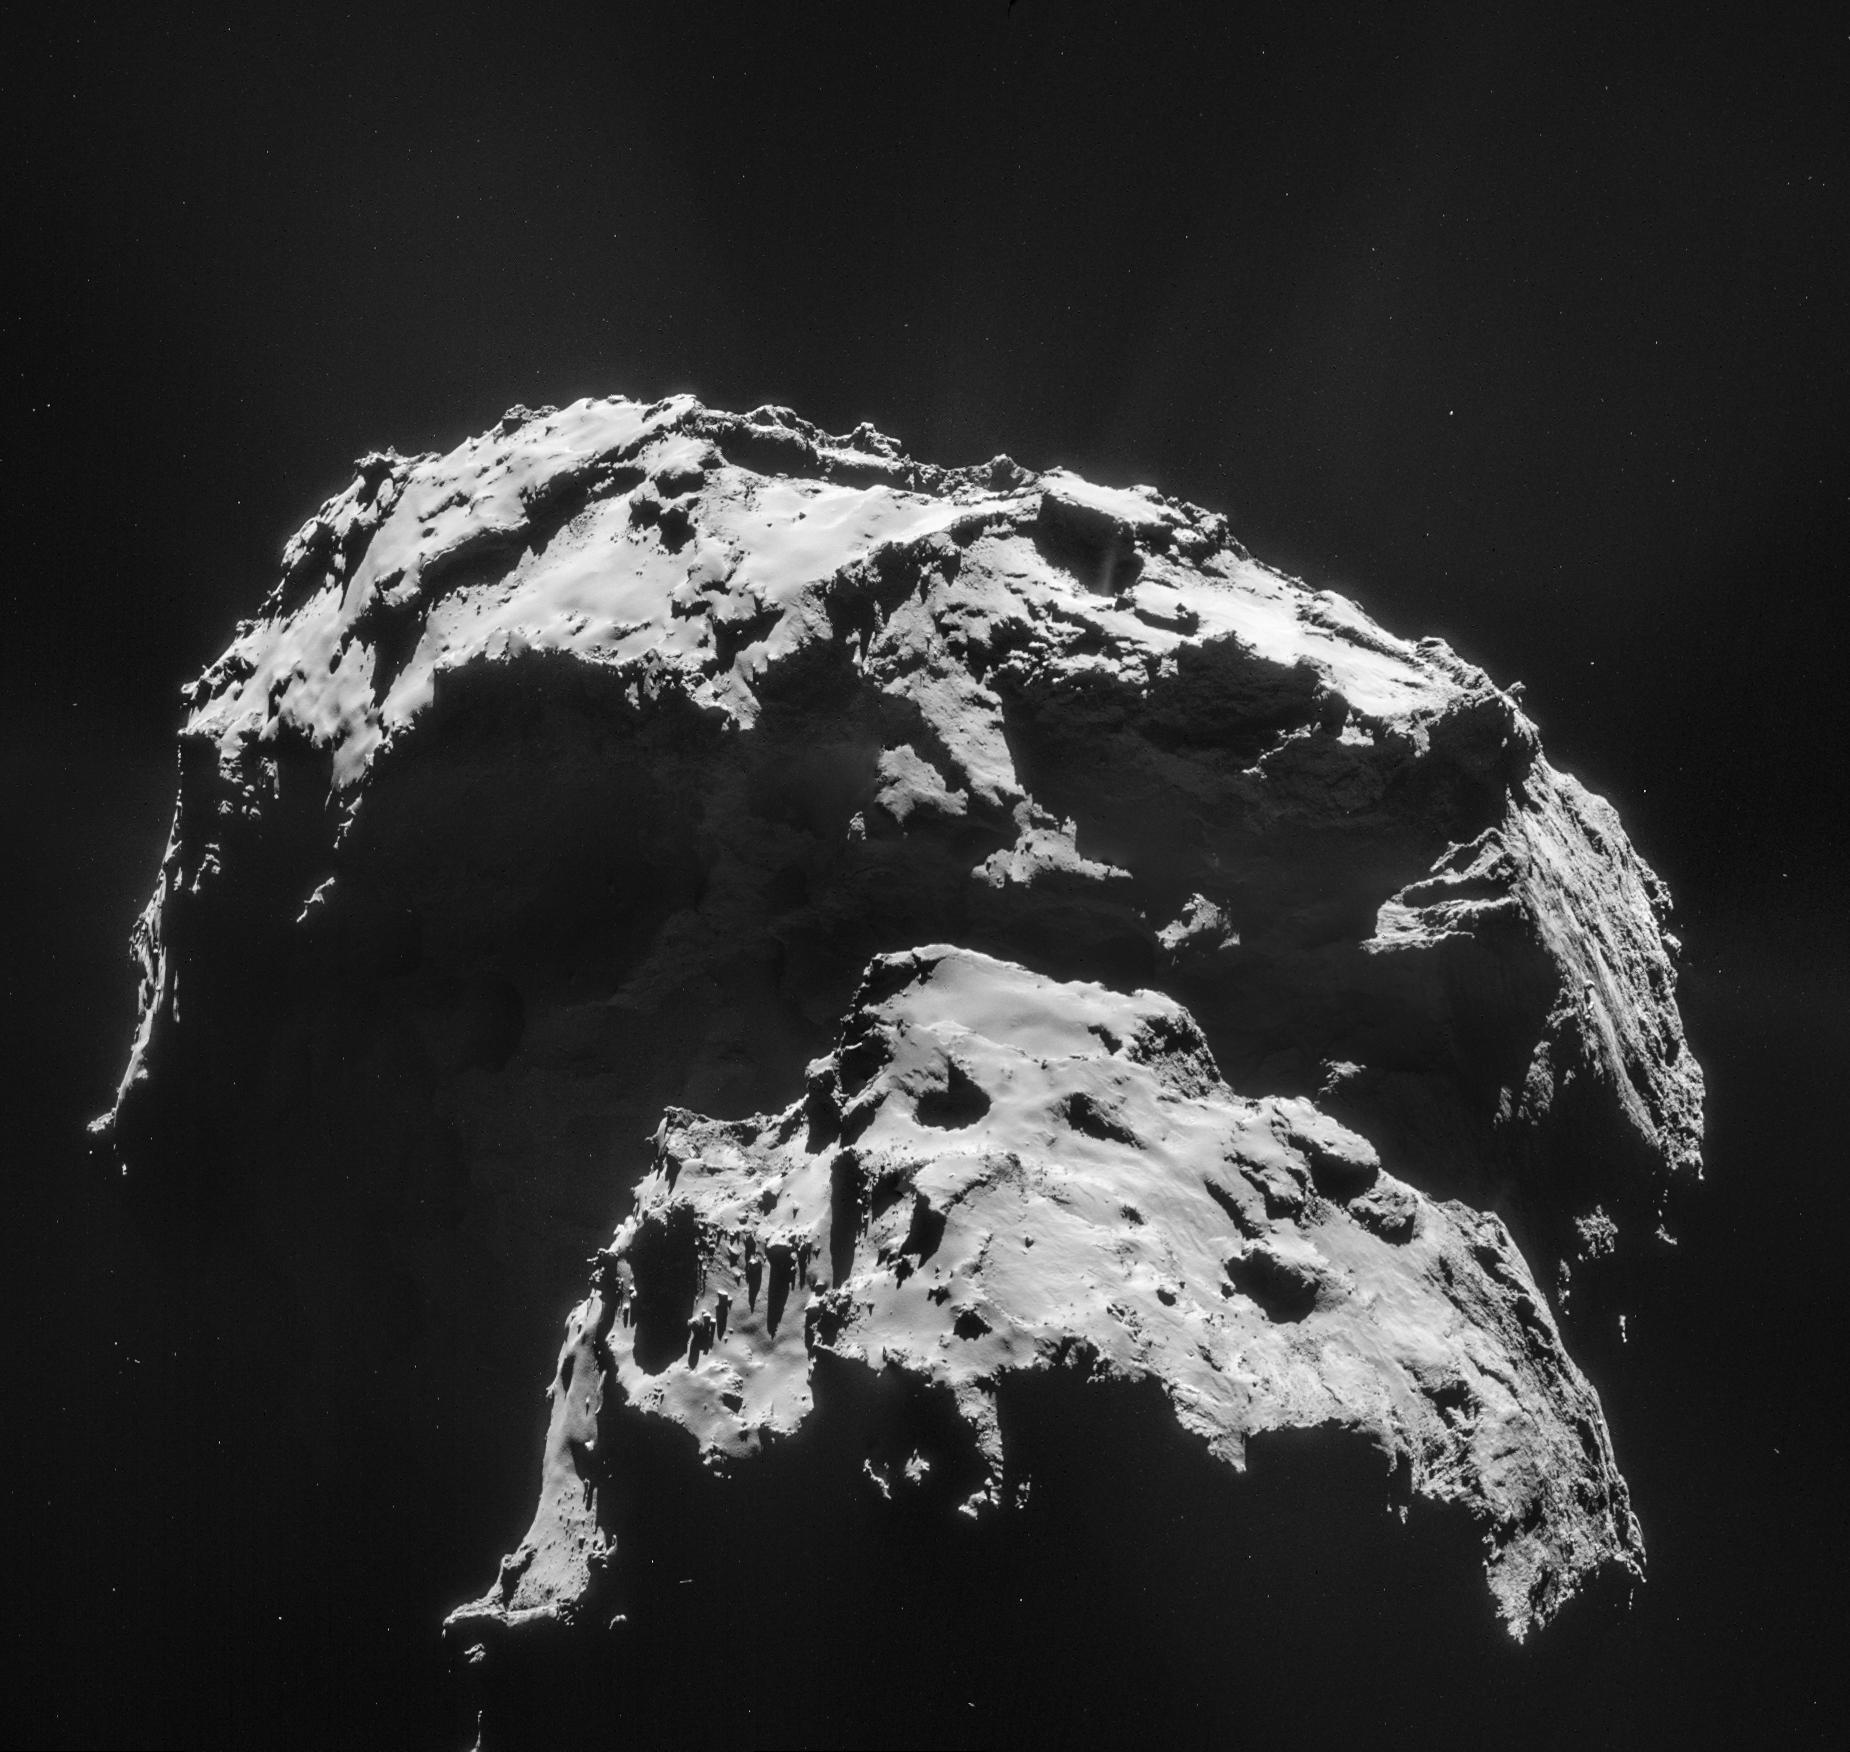 Comet_on_21_January_2015_NavCam.jpg